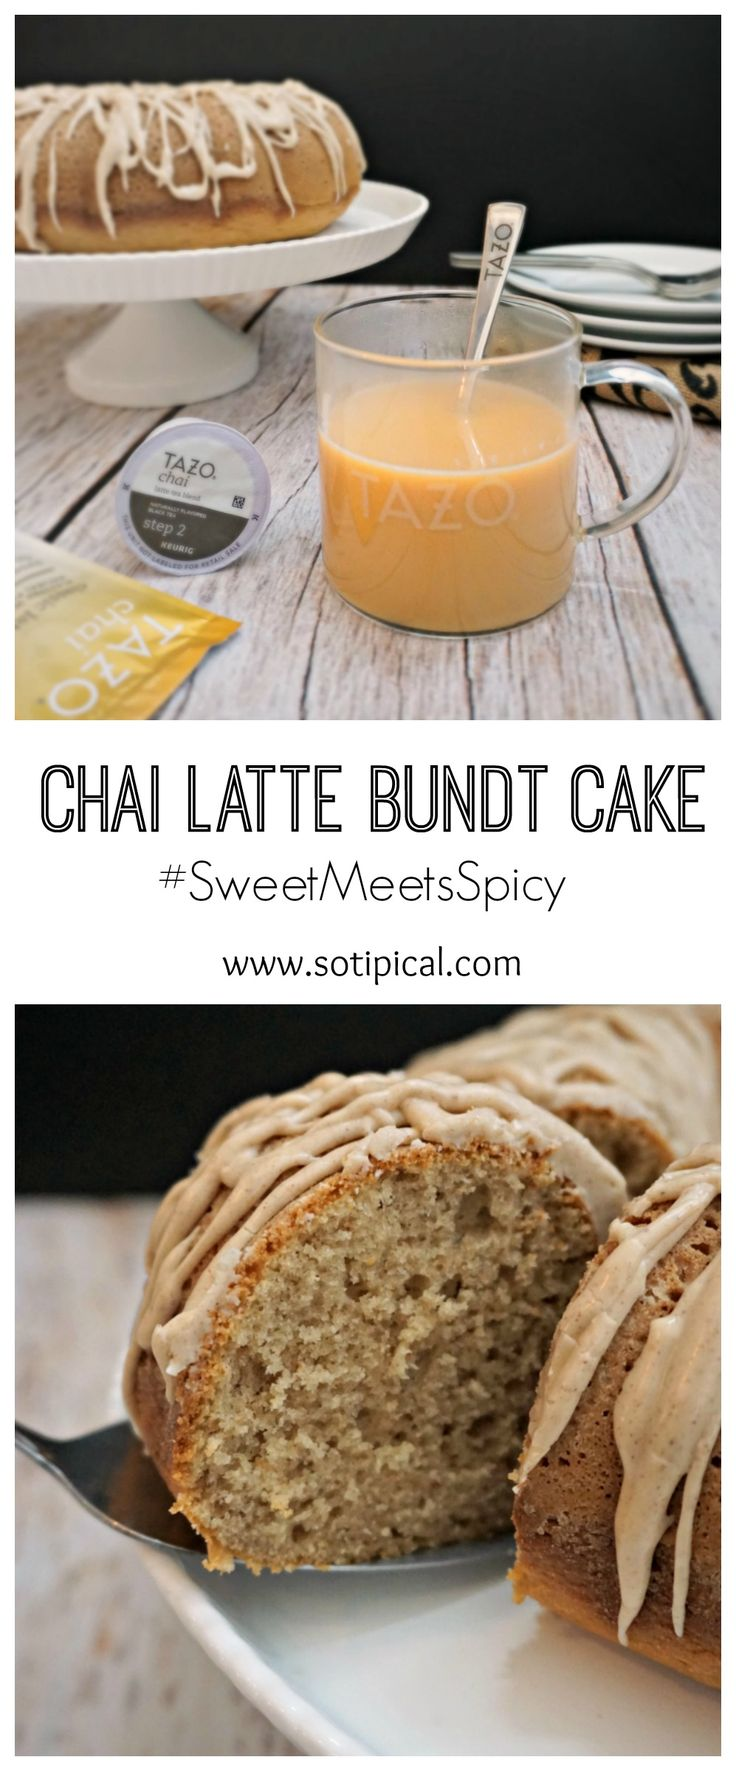 Pair this Chai Latte Bundt Cake with a steaming cup of TAZO® Chai Latte! #SweetMeetsSpicy #ChaiLatte #IC ad @tazotea